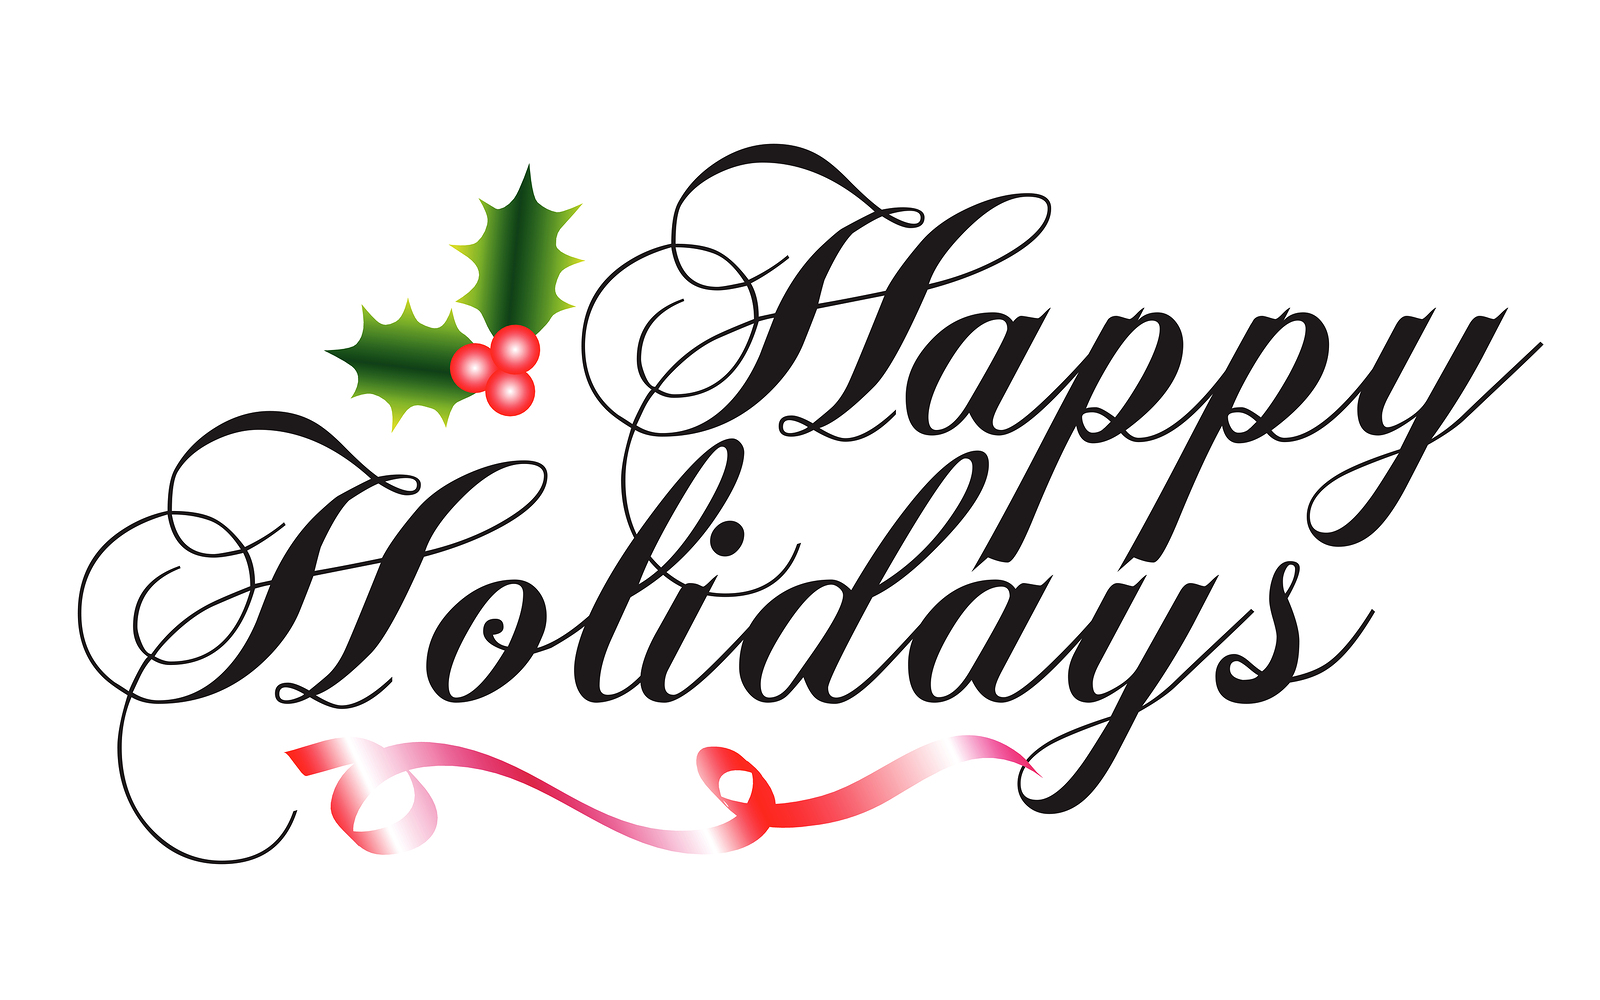 noner says happy holidays vs merry christmas rh nonersays blogspot com Holiday Borders Clip Art Holiday Borders Clip Art